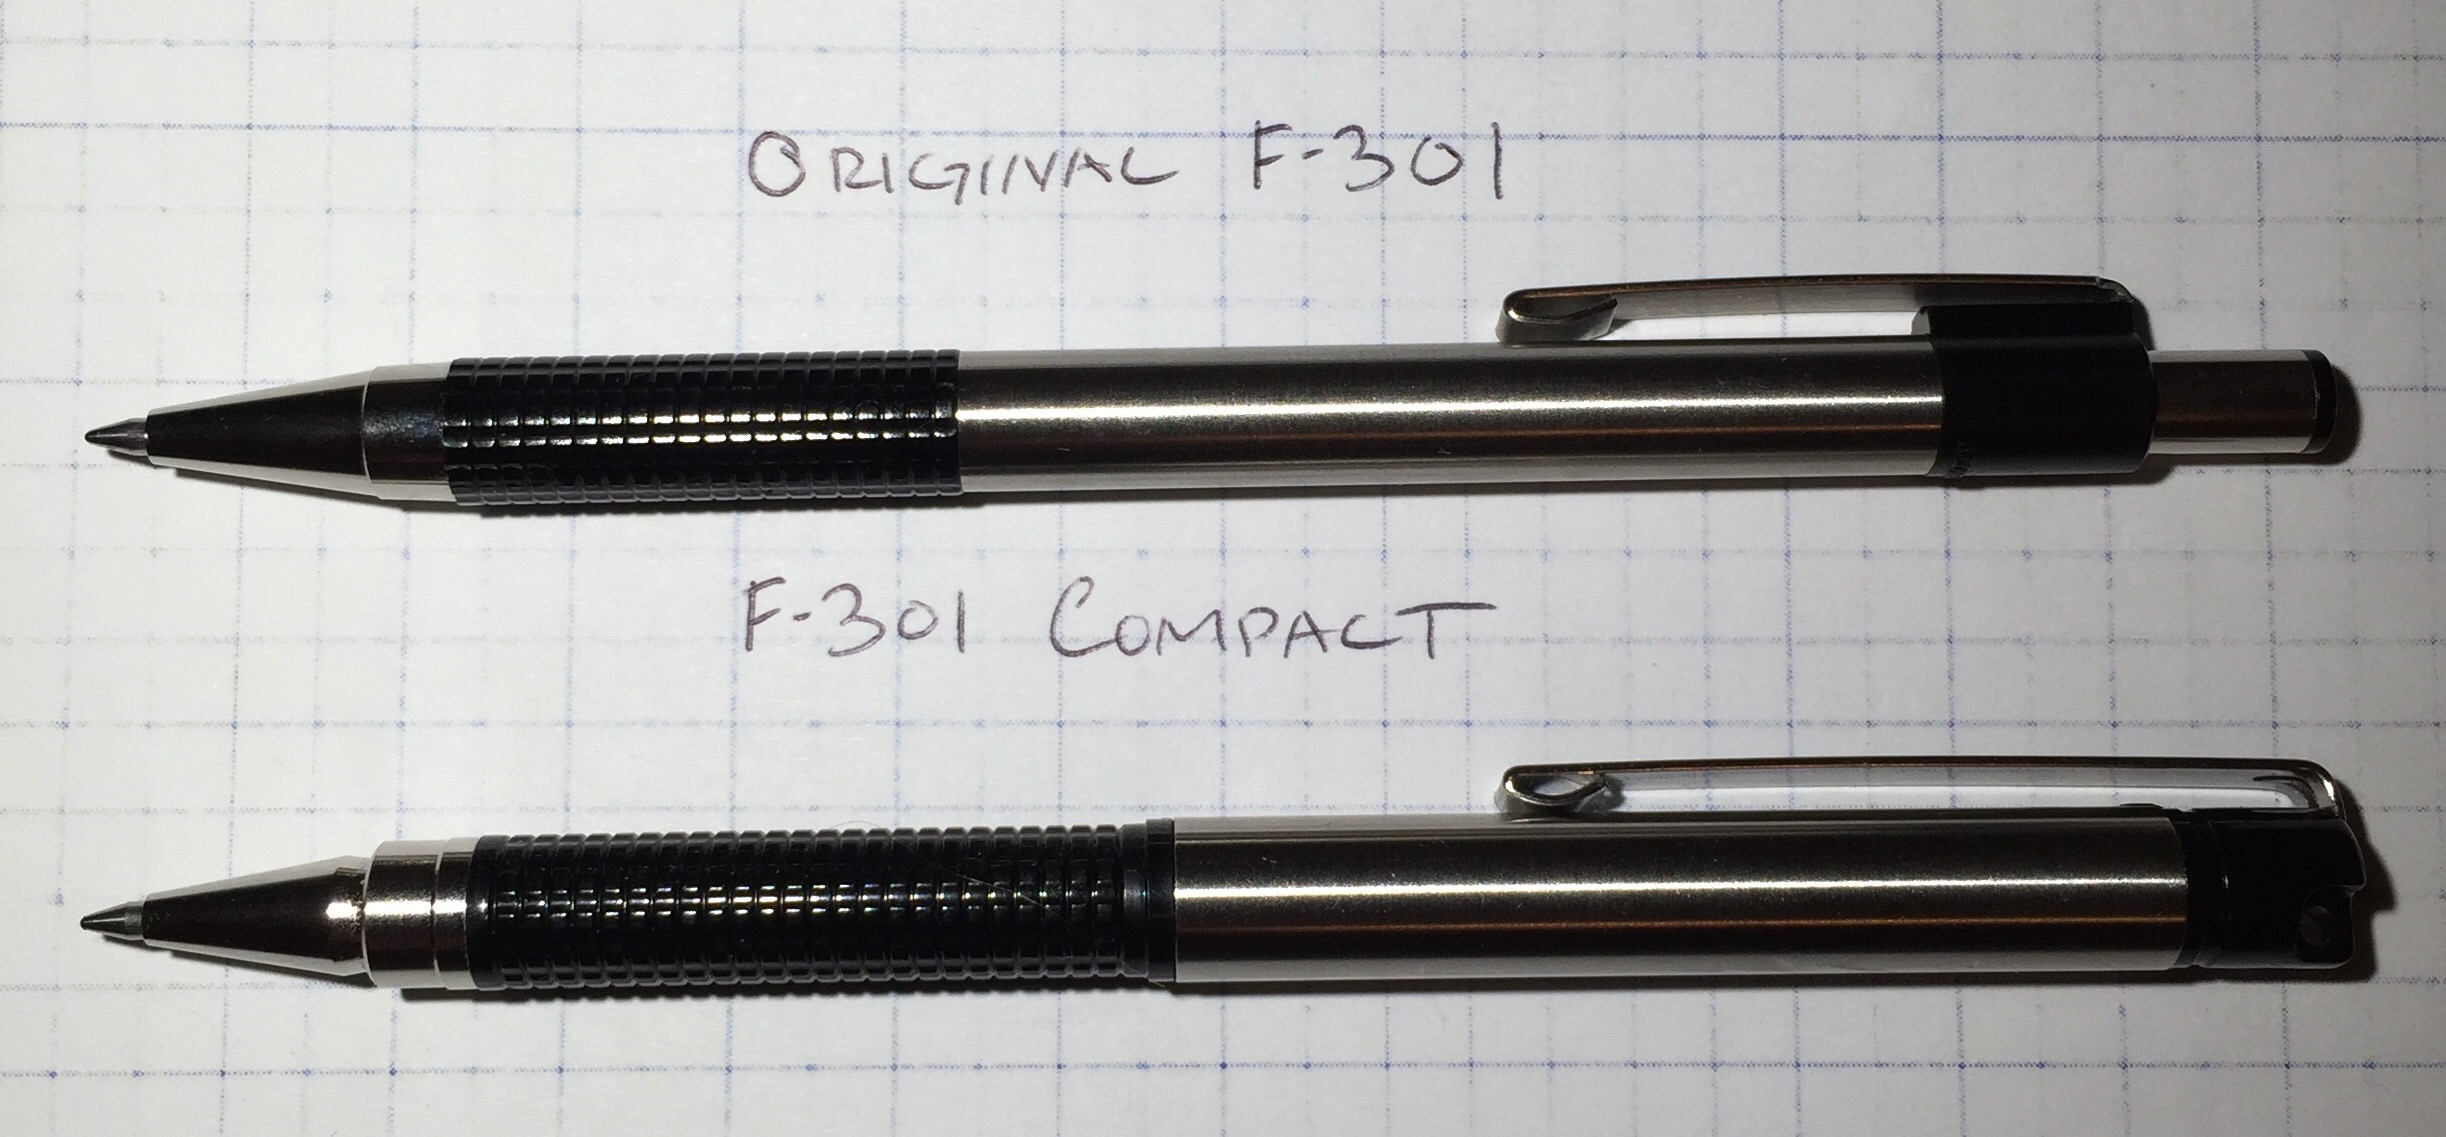 Review: Zebra F-301 Compact, Ballpoint Pen, 0.7mm